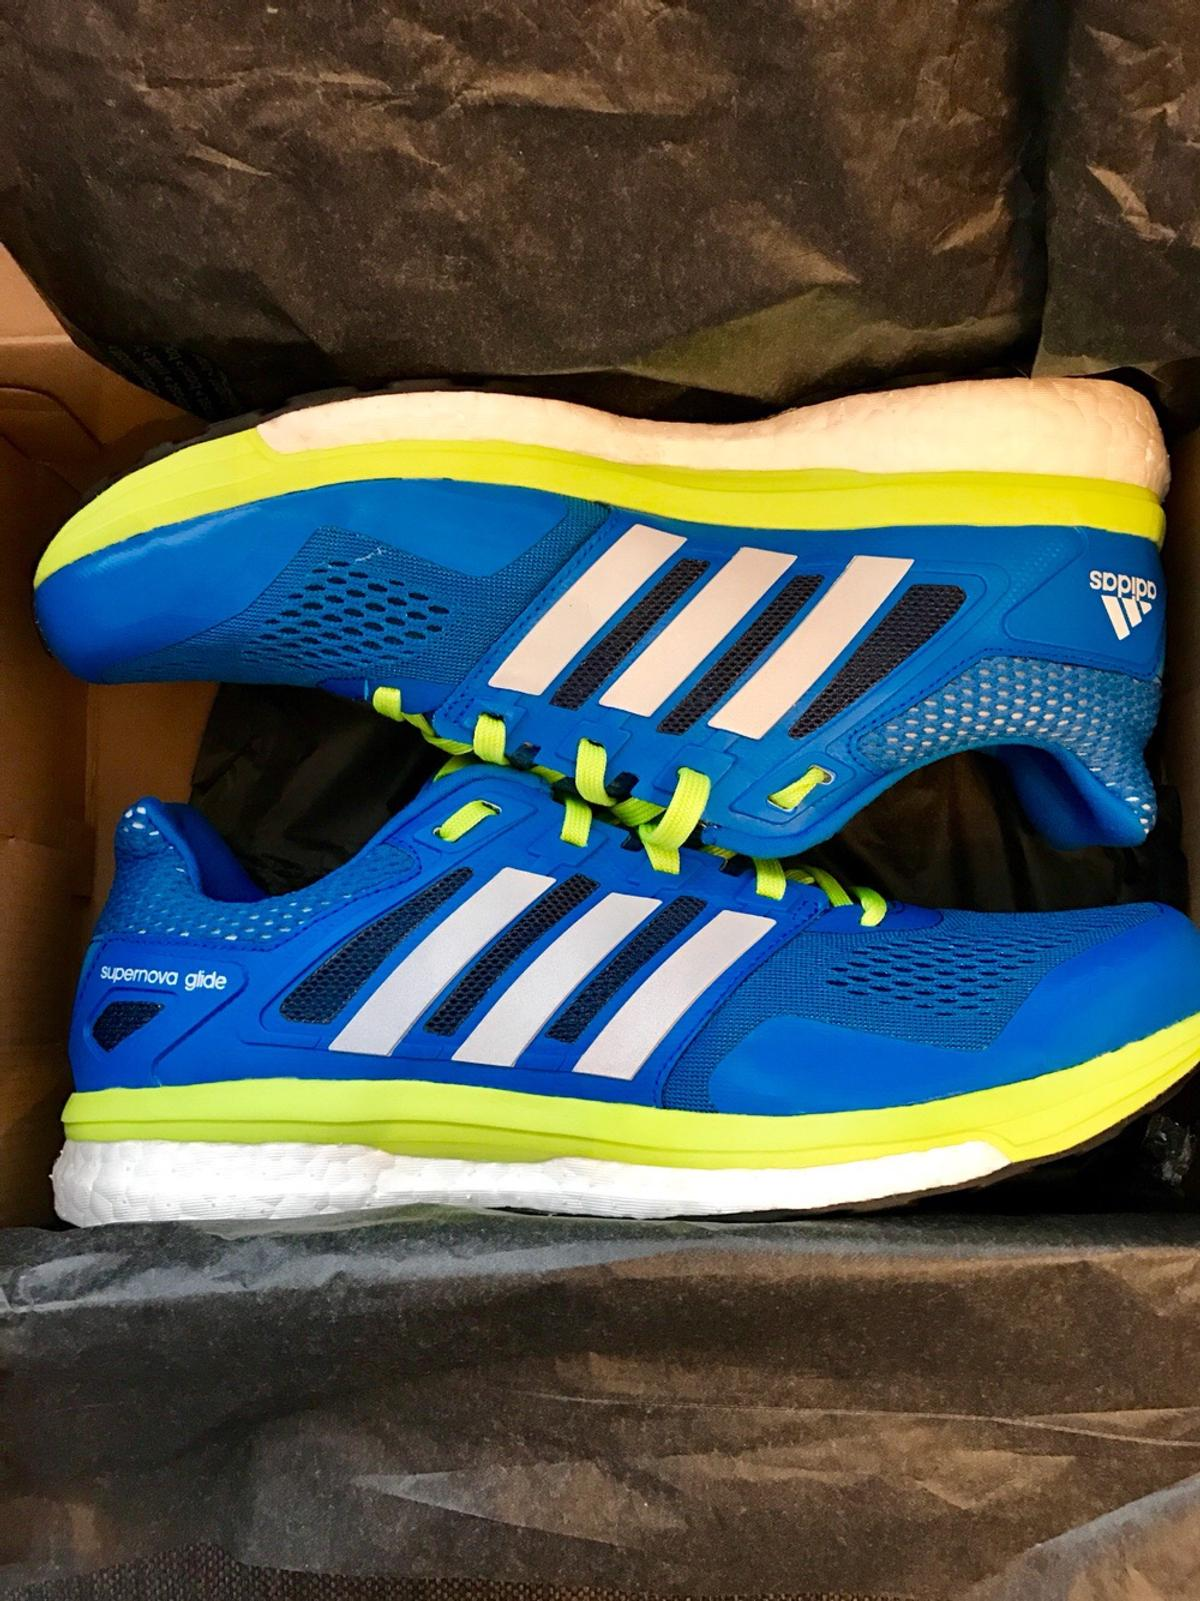 Adidas Supernova Glide Boost 8 in 82110 Germering for €50.00